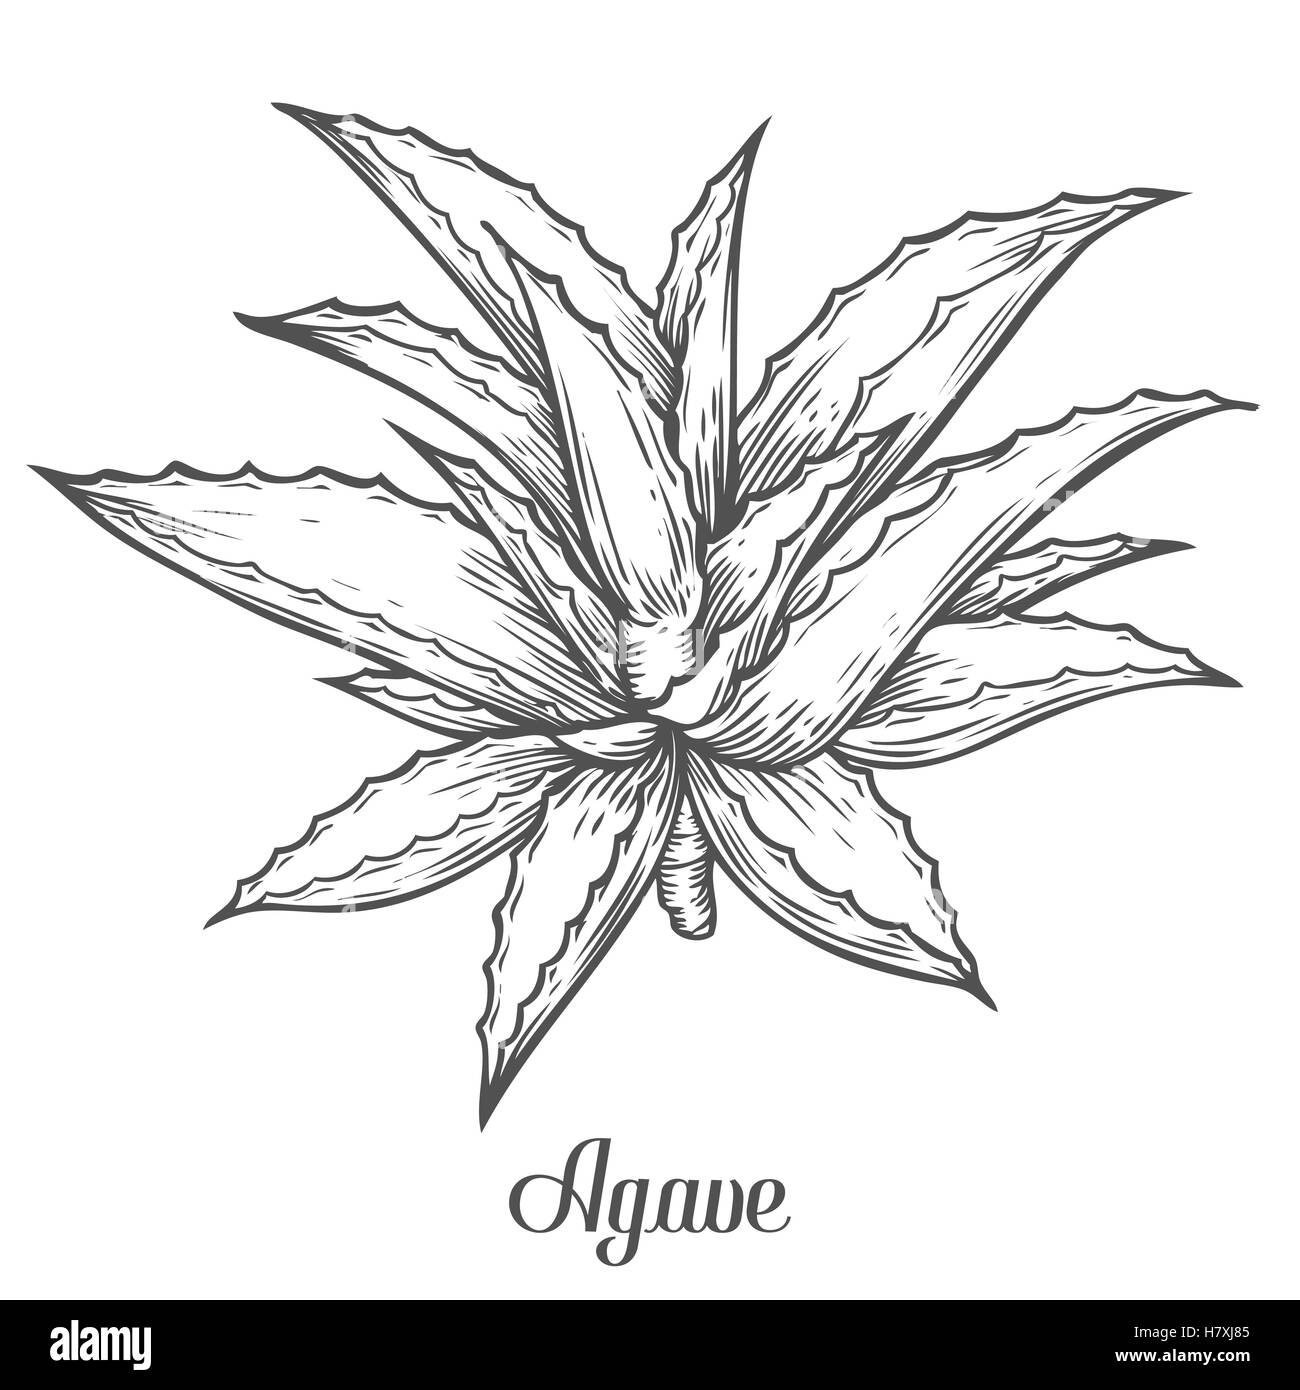 Cactus blue agave. plant vector hand drawn illustration on white background. Ingredient for traditional medicine, - Stock Image